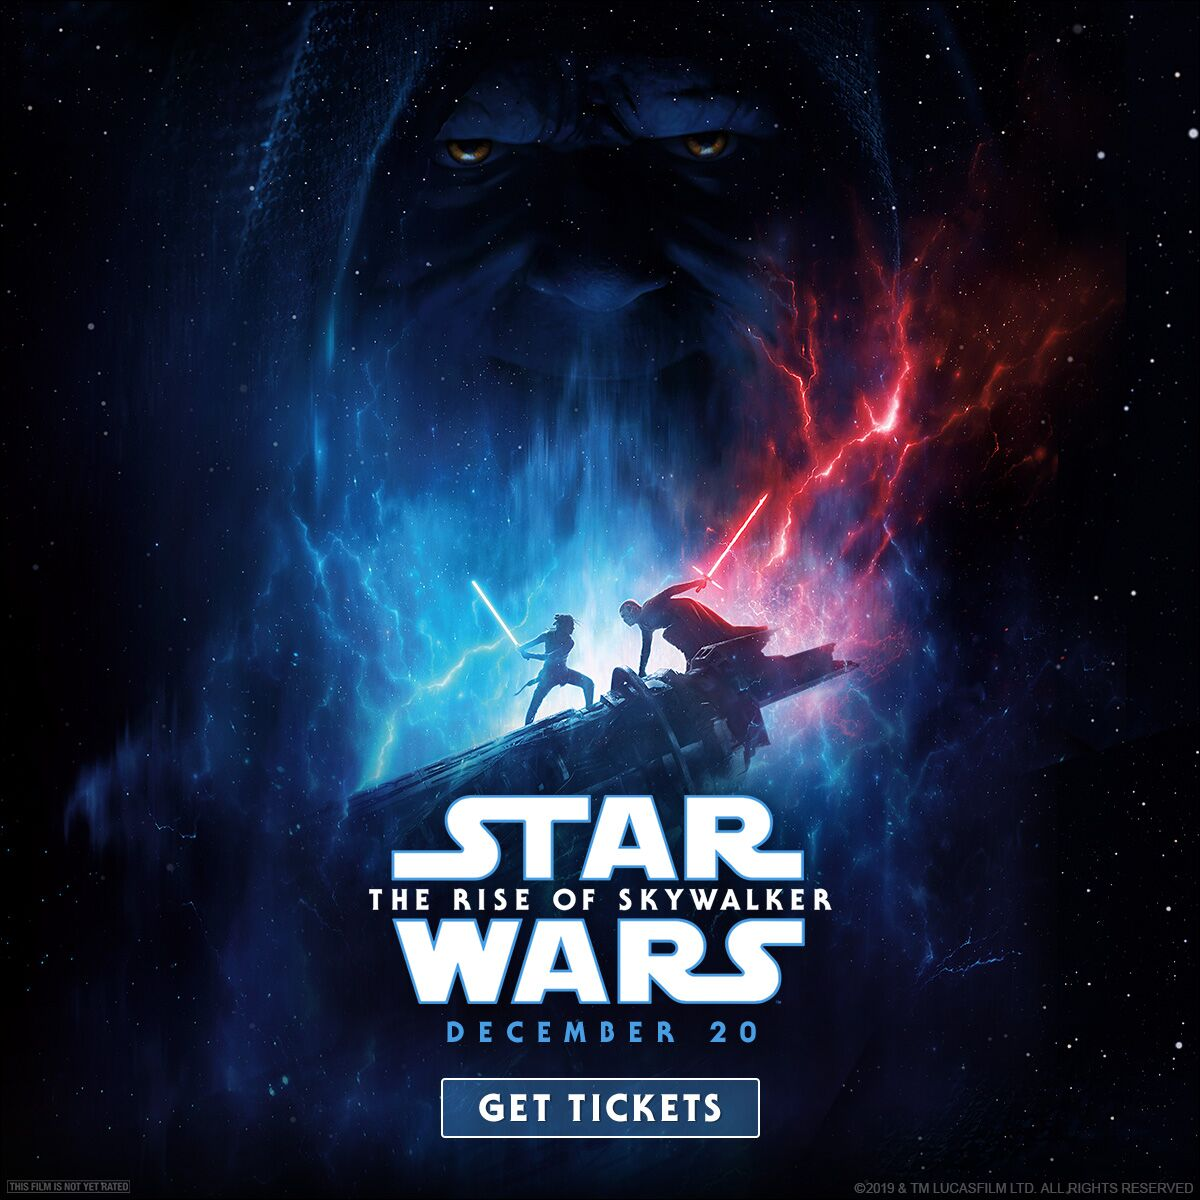 Star Wars The Rise Of Skywalker Arlington Cinema And Drafthouse